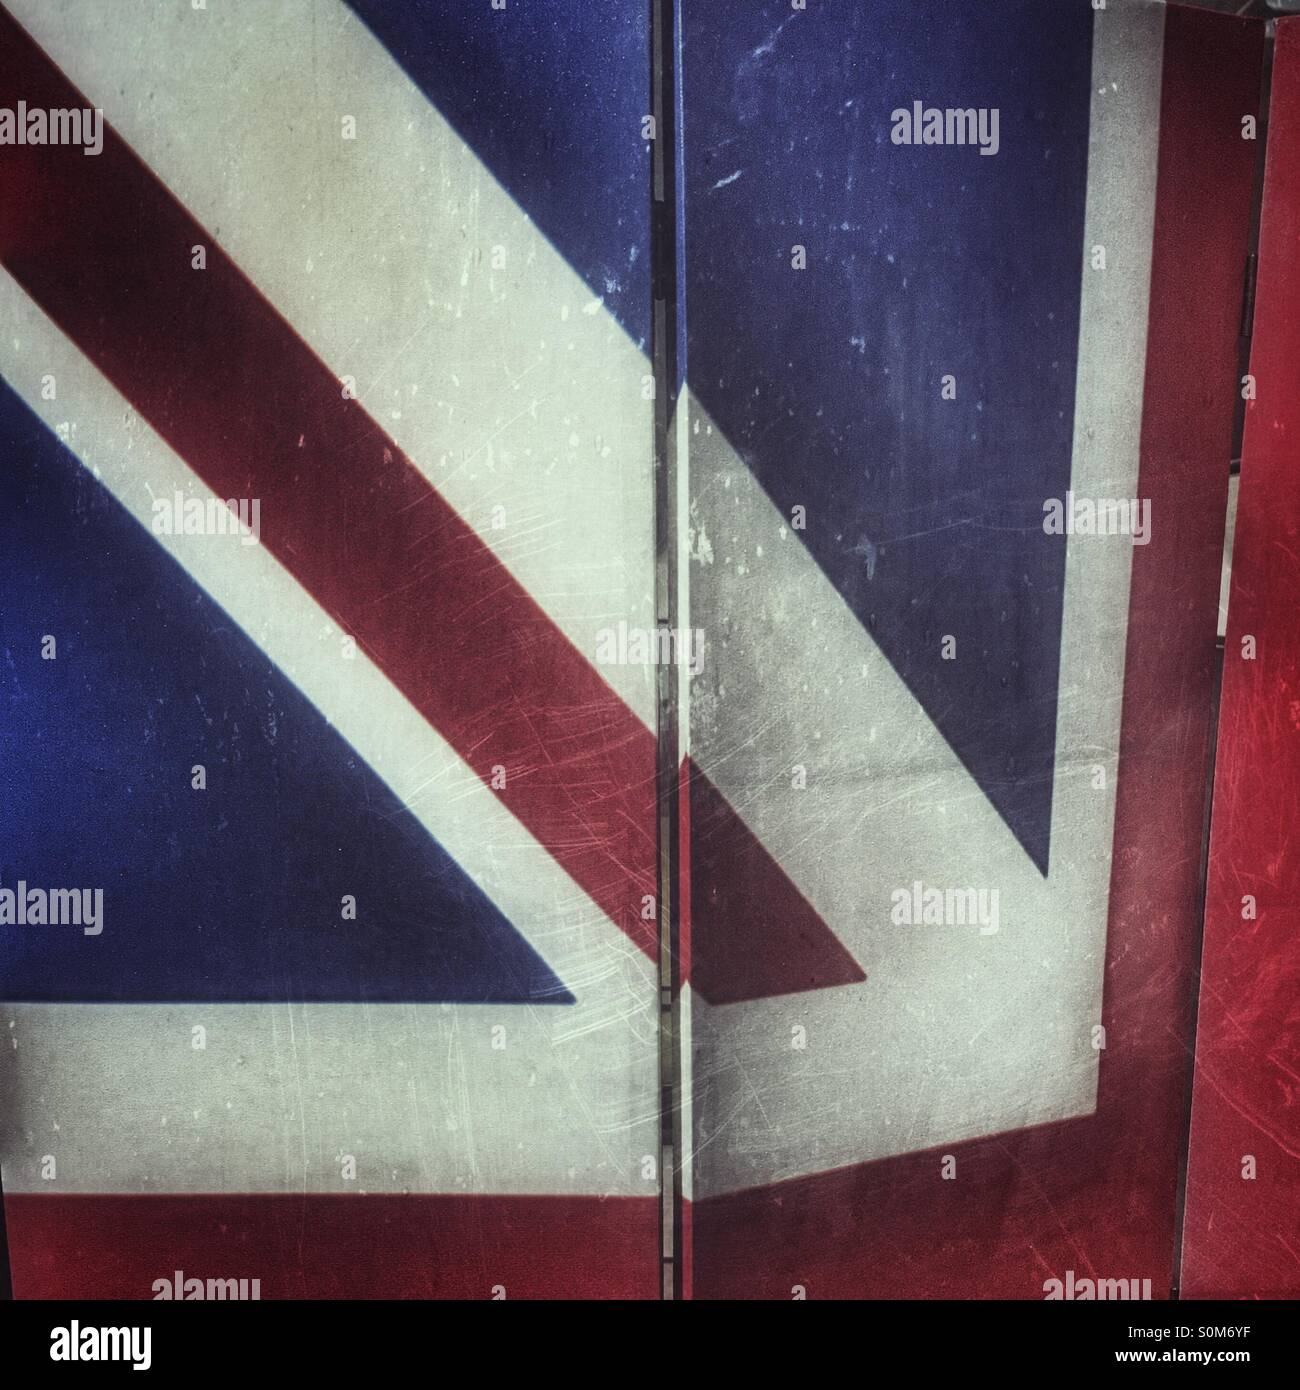 Union Jack pattern on a folding screen Stock Photo